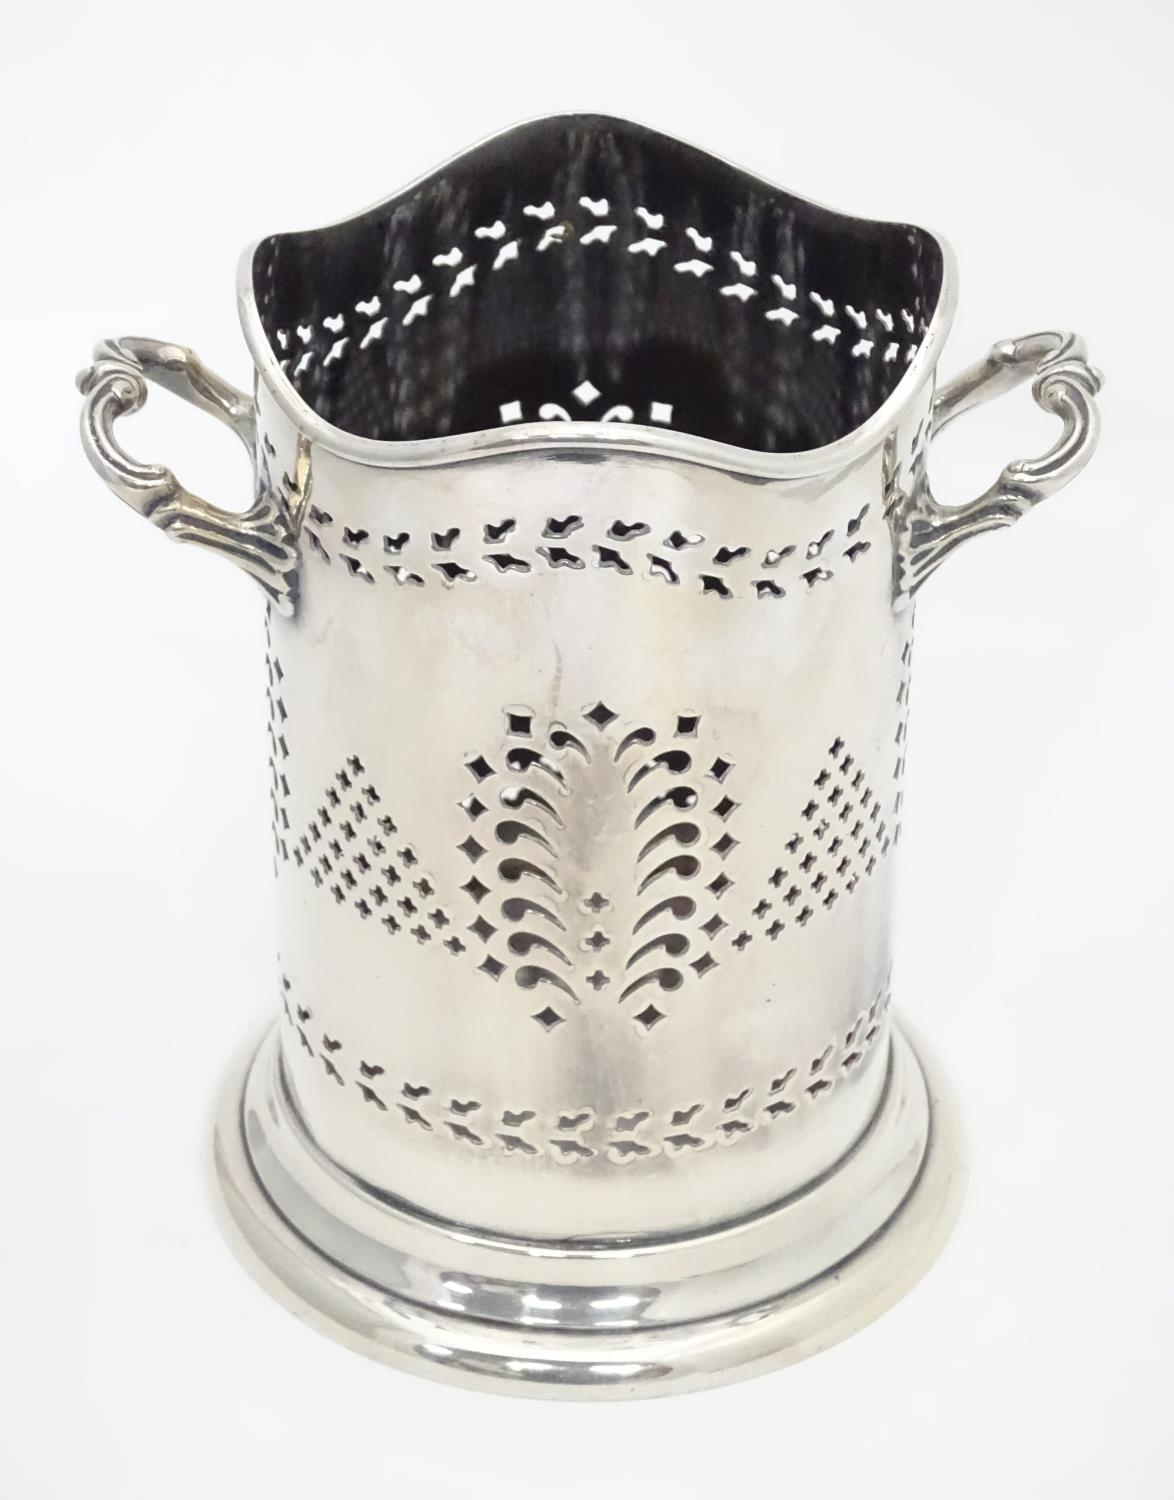 A silver plated siphon bottle holder, maker Walker and Hall Please Note - we do not make reference